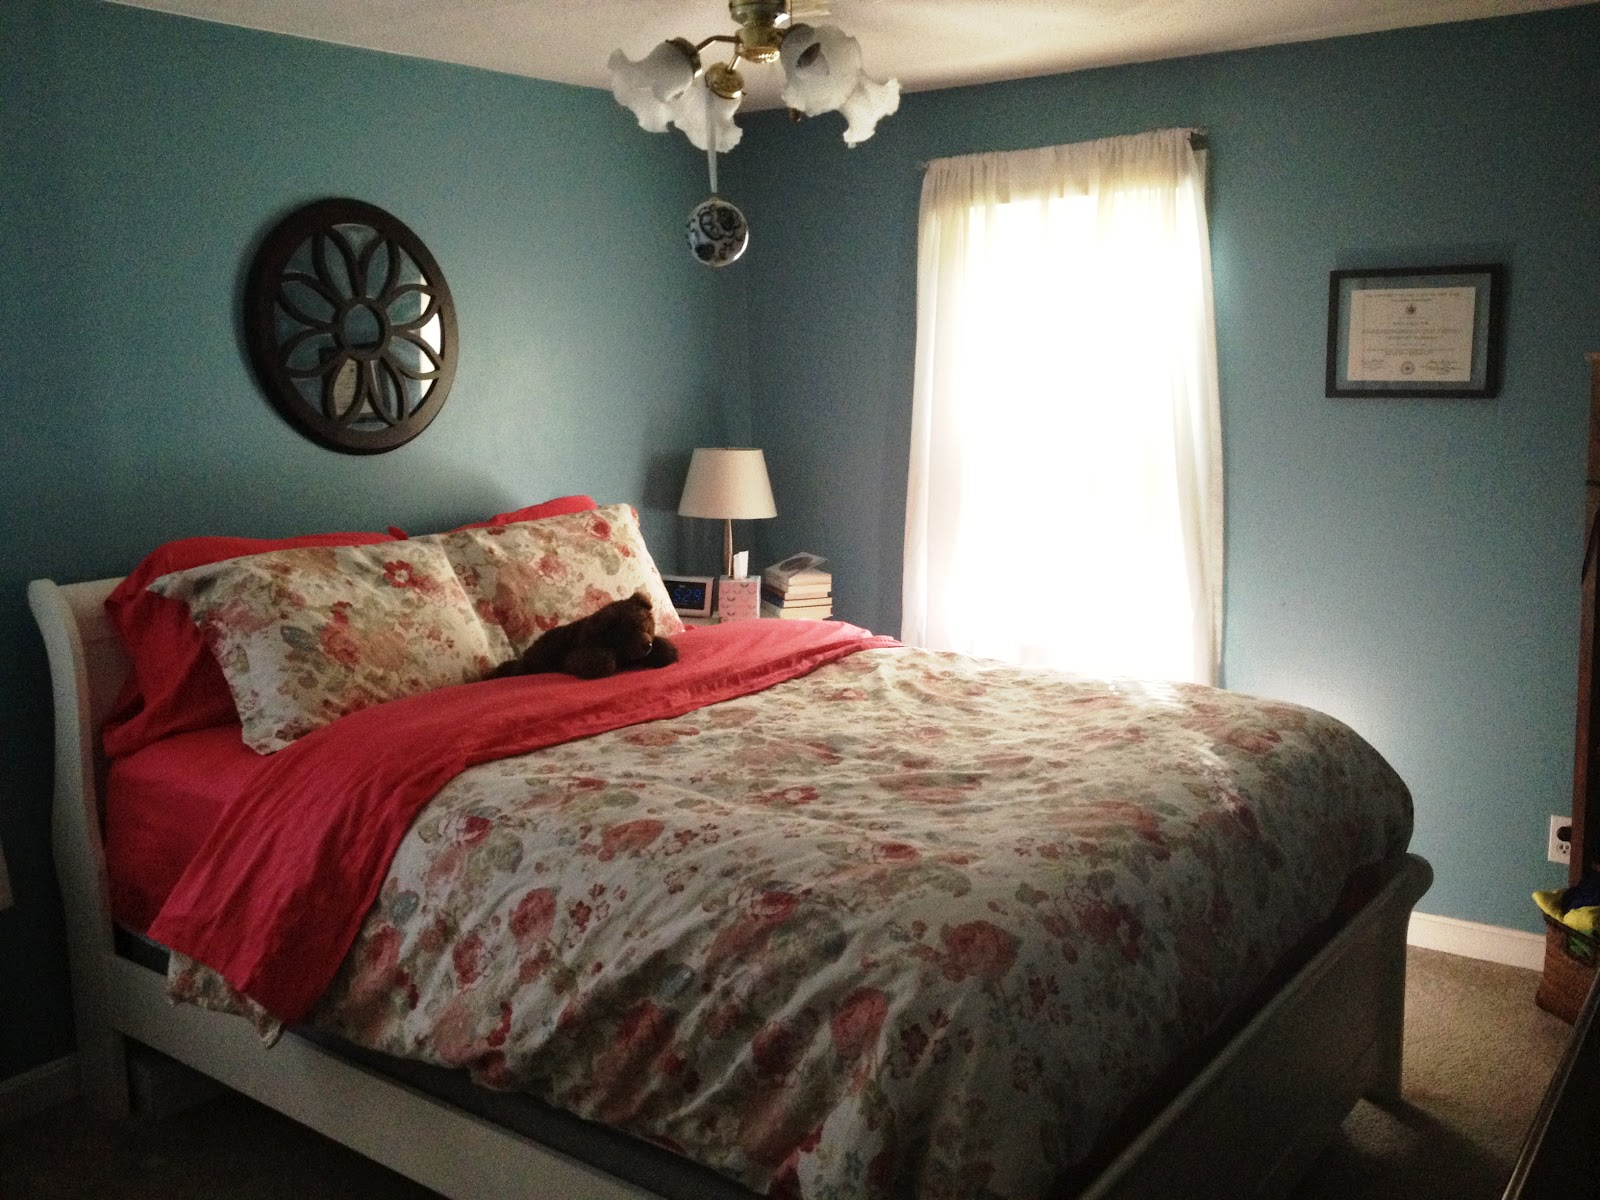 Maresy dotes extreme makeover bedroom edition for Extreme makeover bedroom ideas